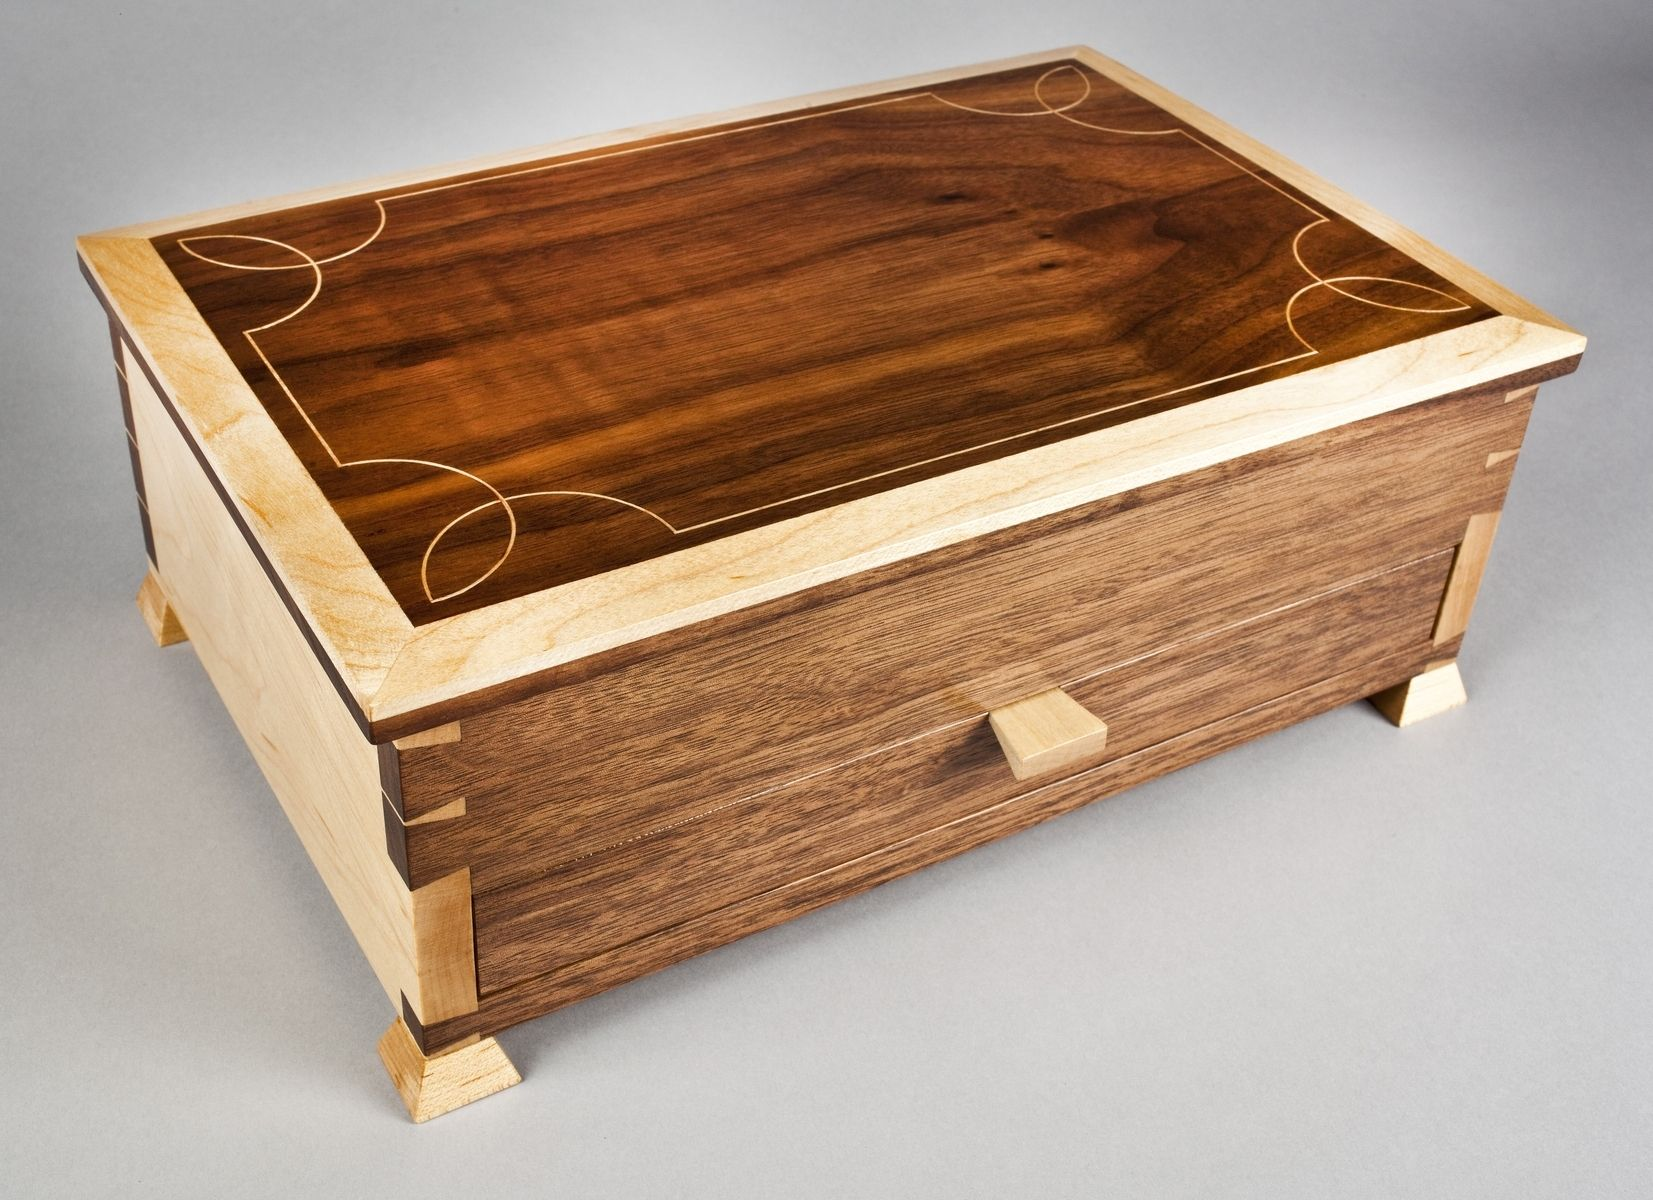 Handmade elegant jewelry box by e n curtis woodworks for Handmade wooden jewelry box